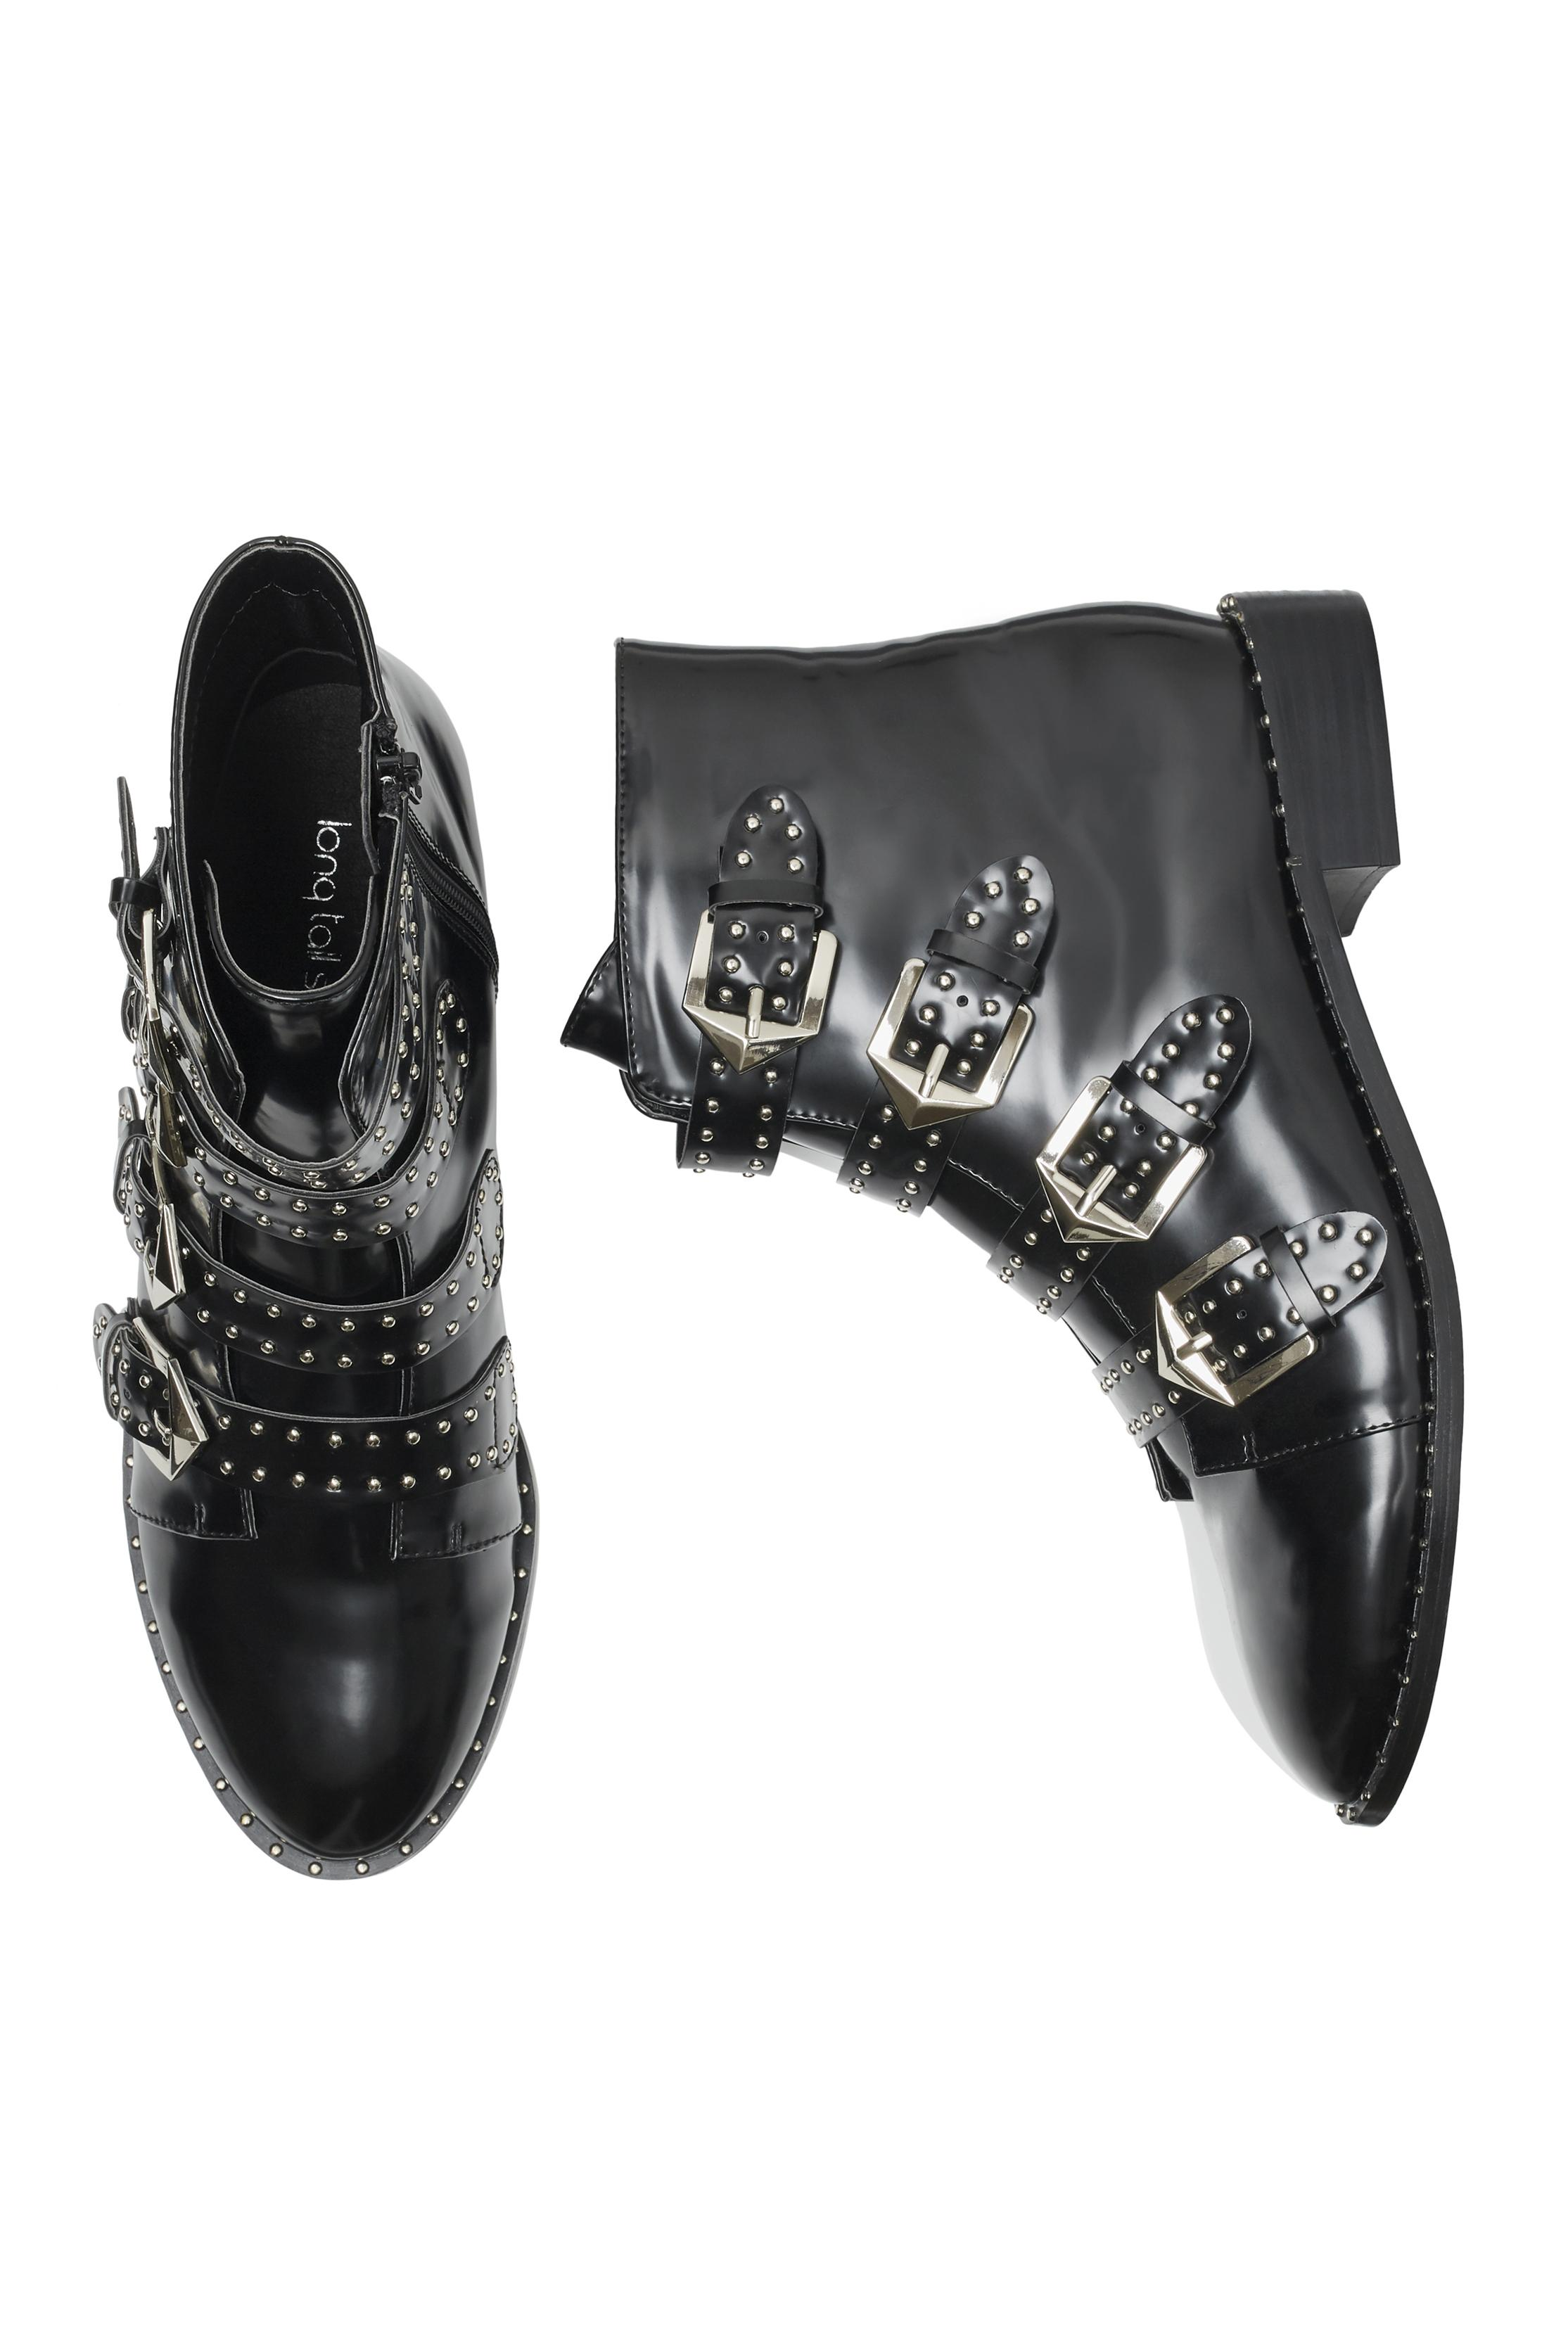 34b74d997a6 Long Tall Sally Large Size Lts Storm Studded Ankle Boot in Black - Lyst